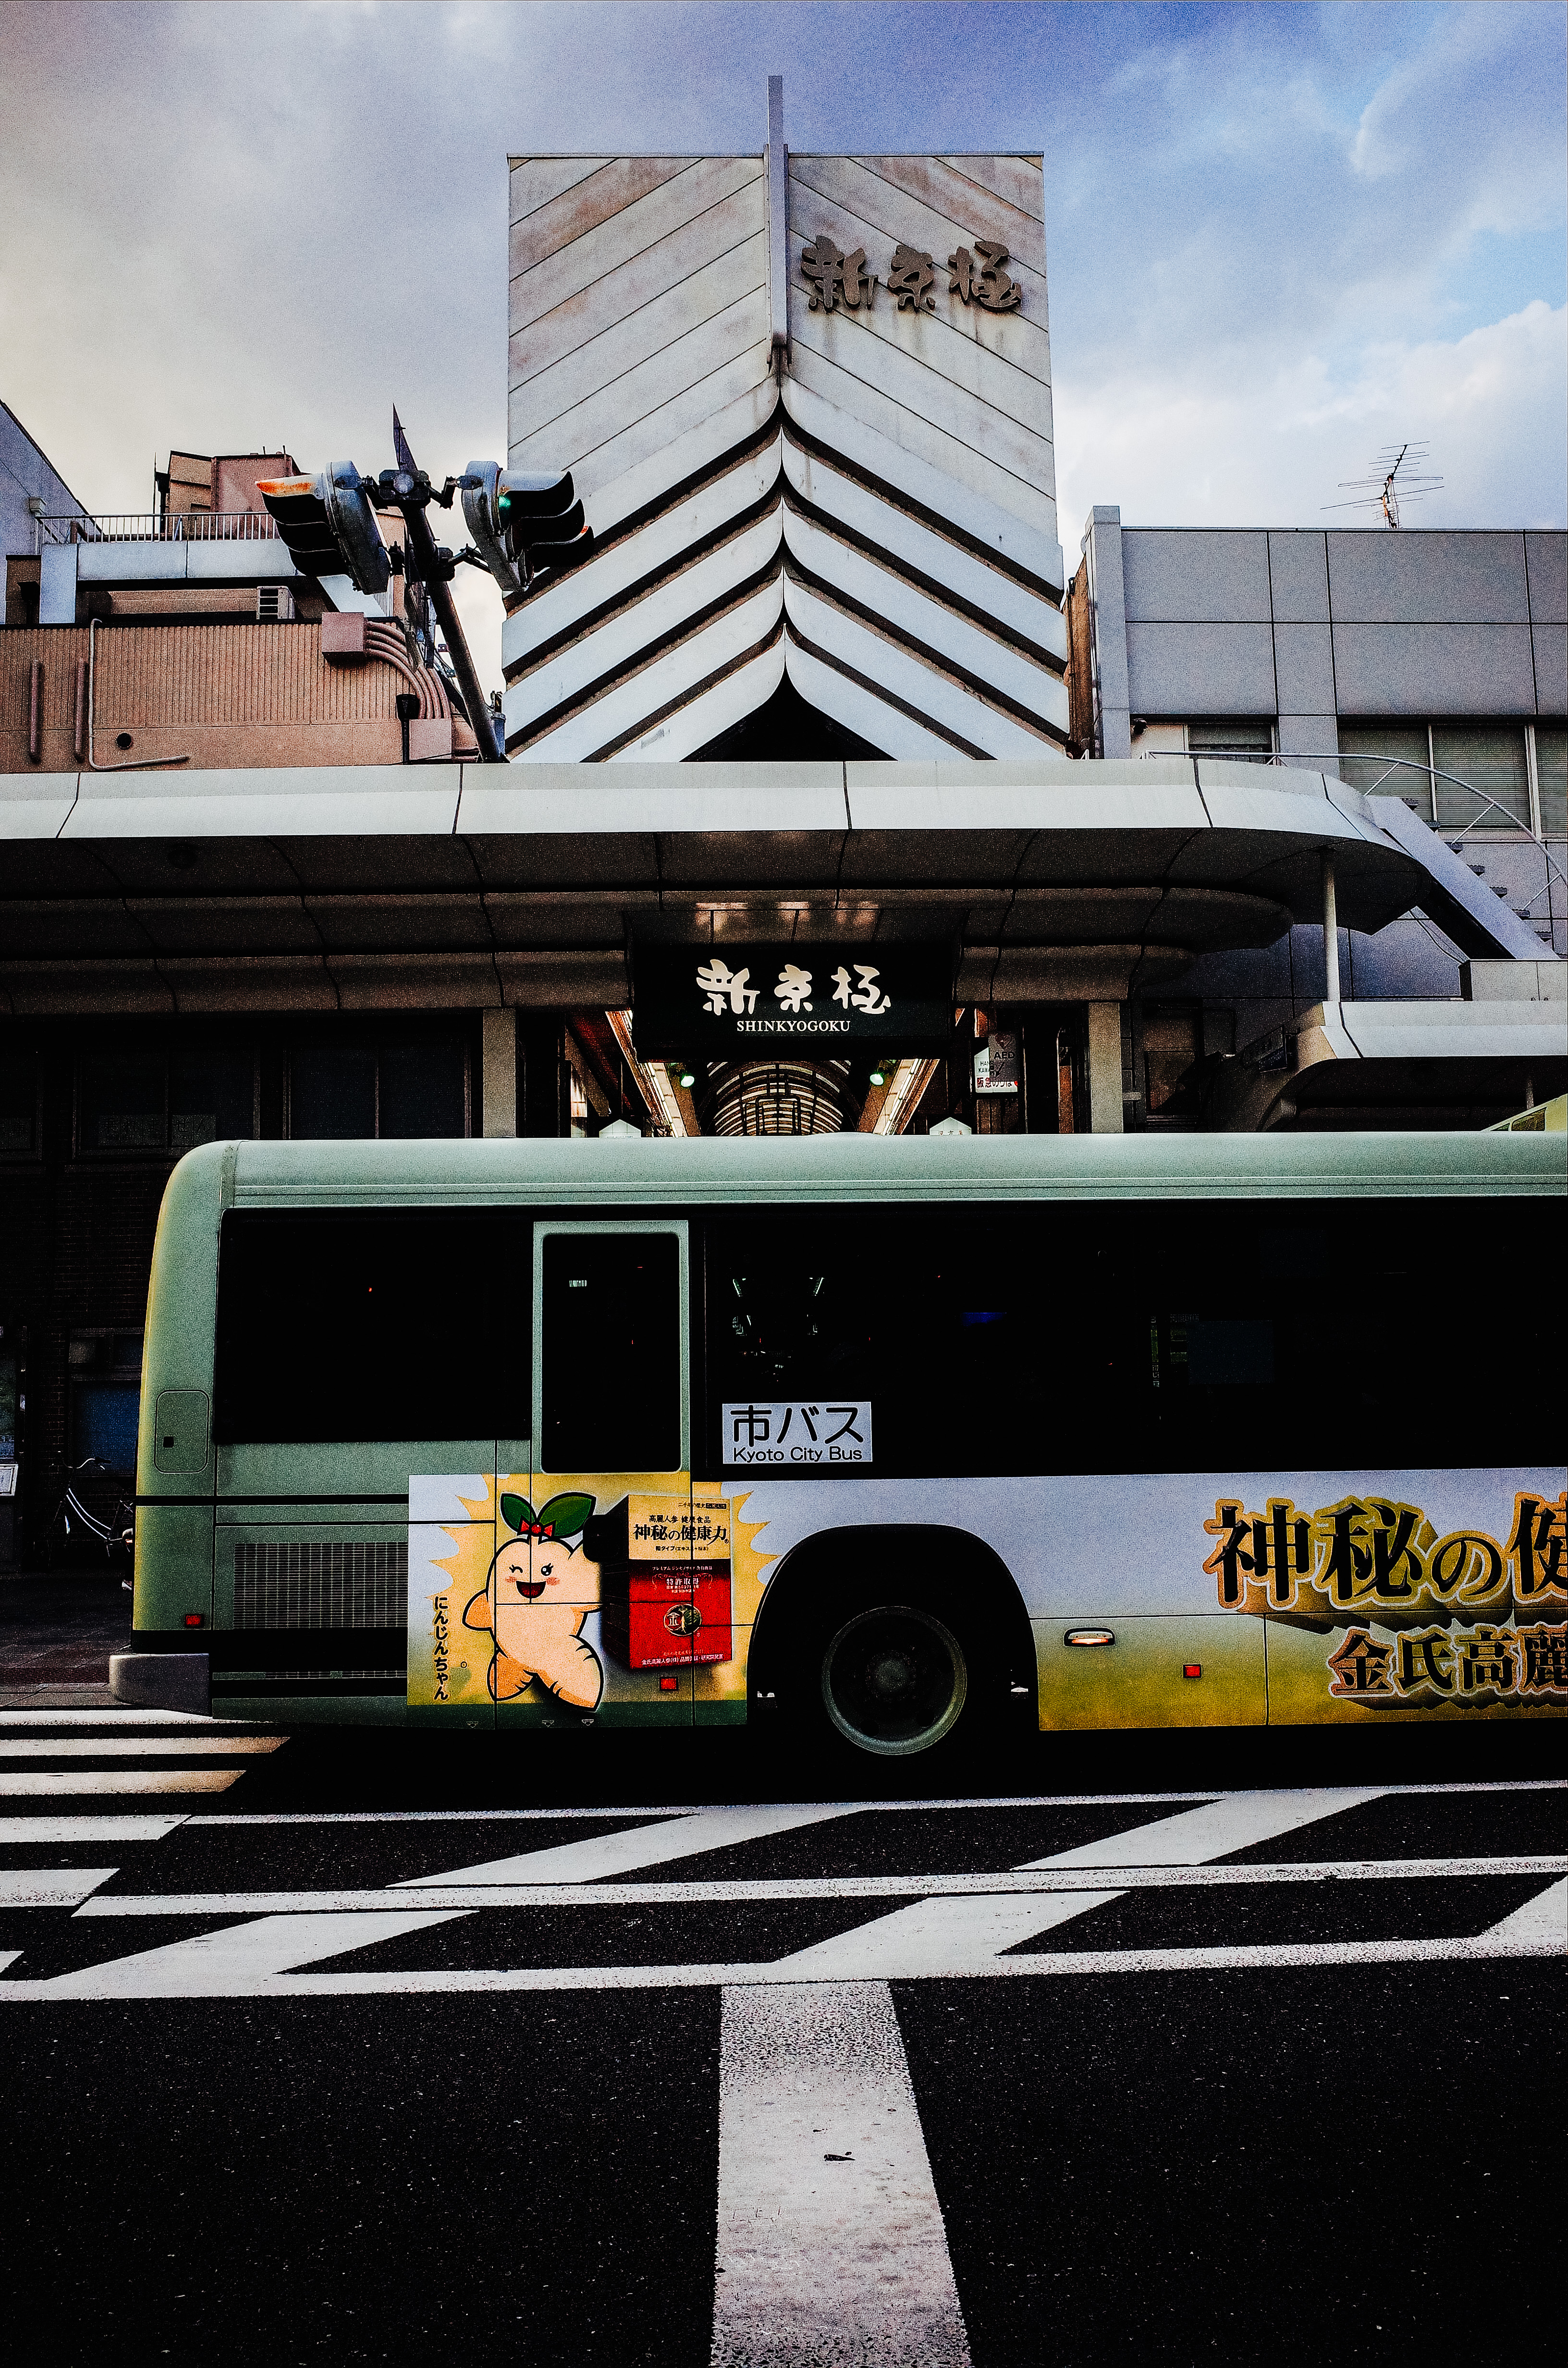 Kyoto urban landscape and bus. 2017